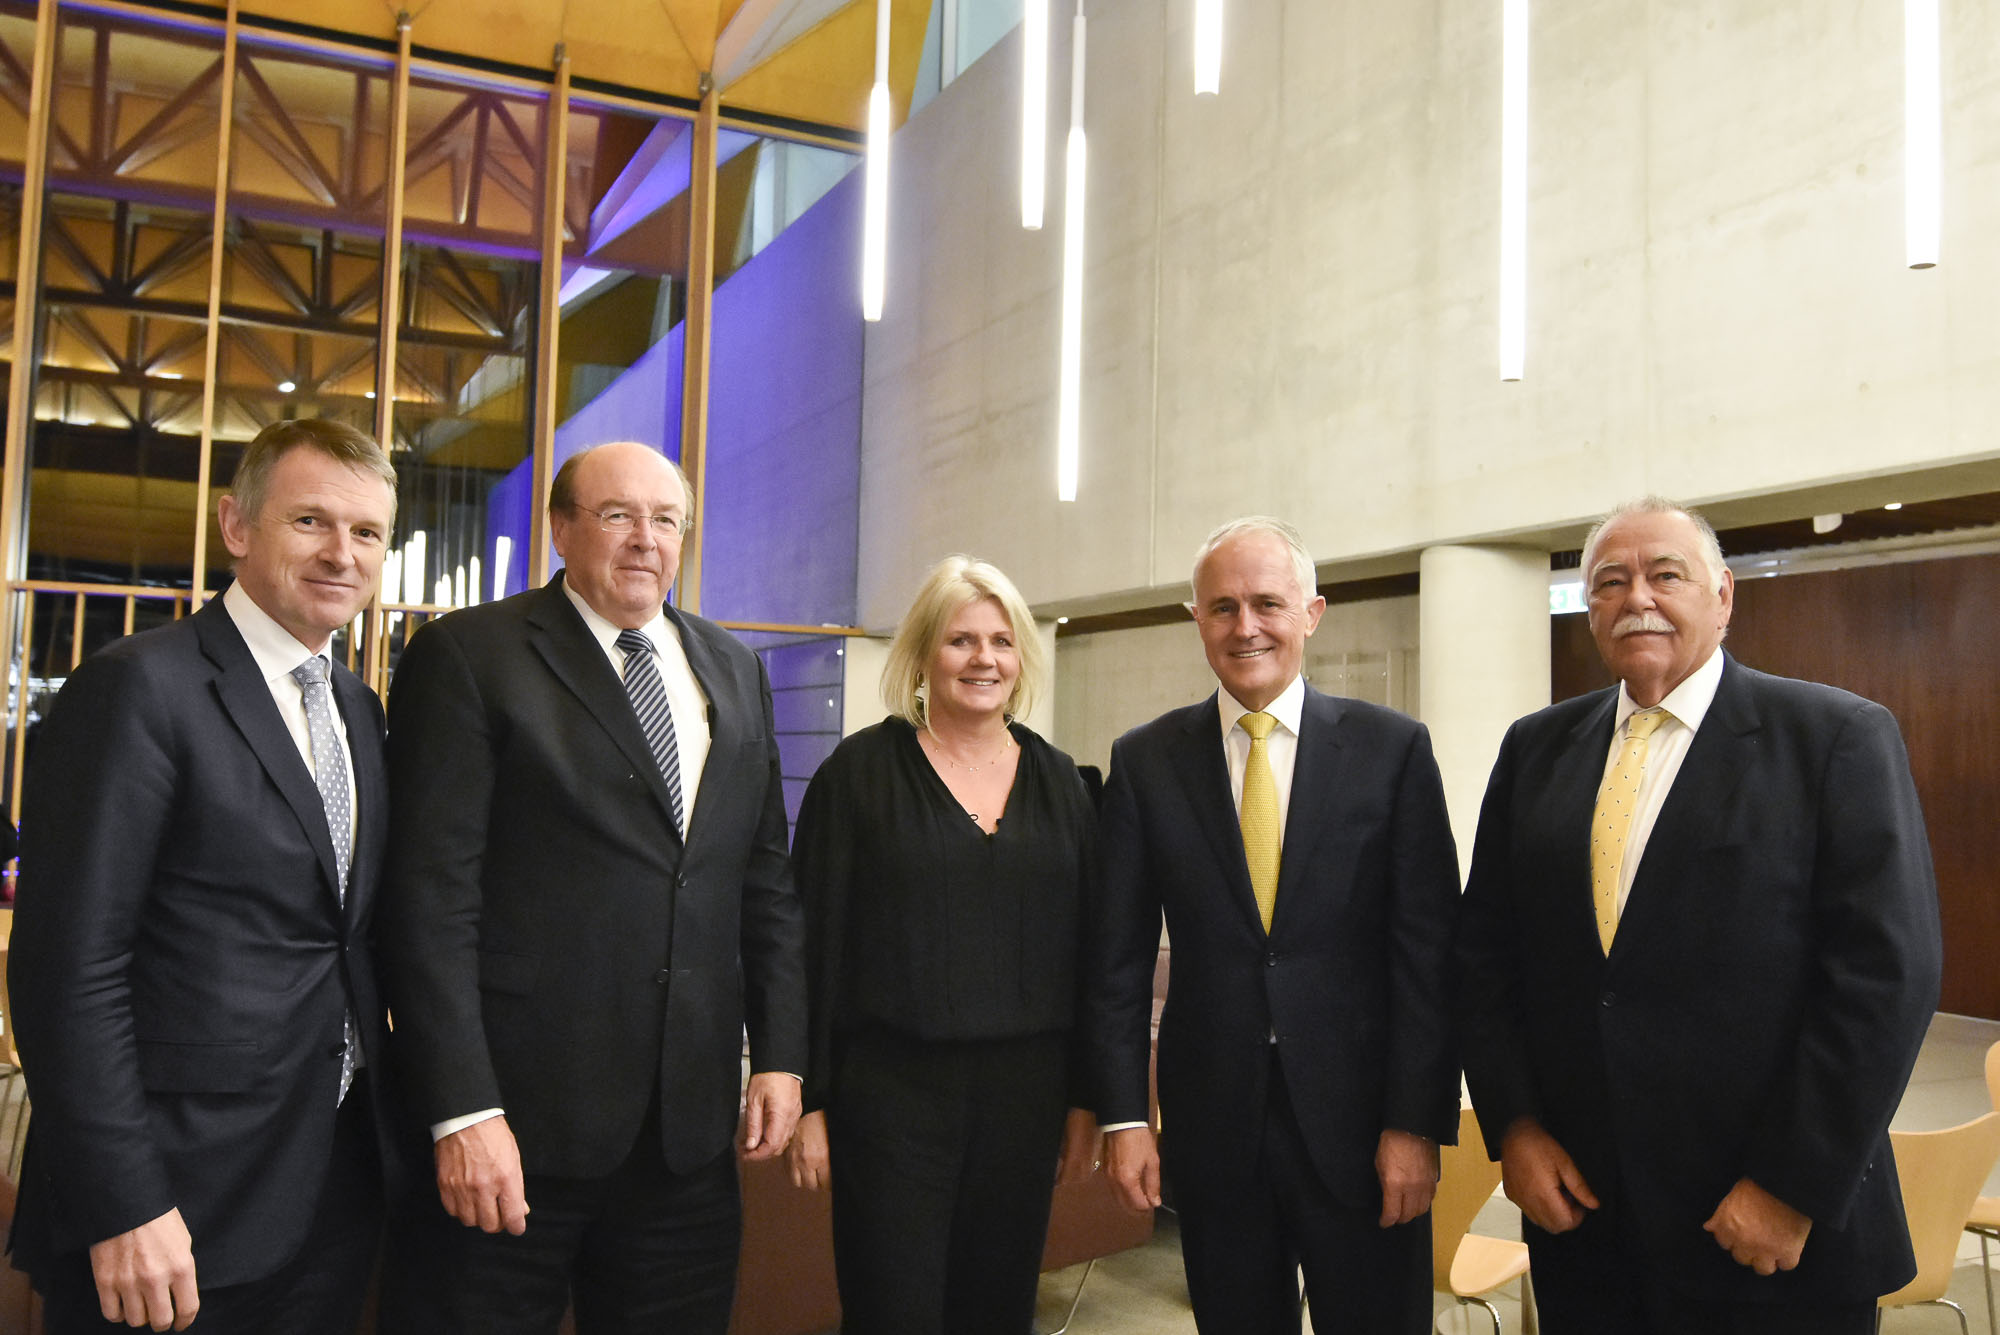 Dominic Stevens, ASX CEO; Peter Warne, ASX board member; Yasmin Allen, Advance Chair; Rick Holliday-Smith, Chairman of ASX